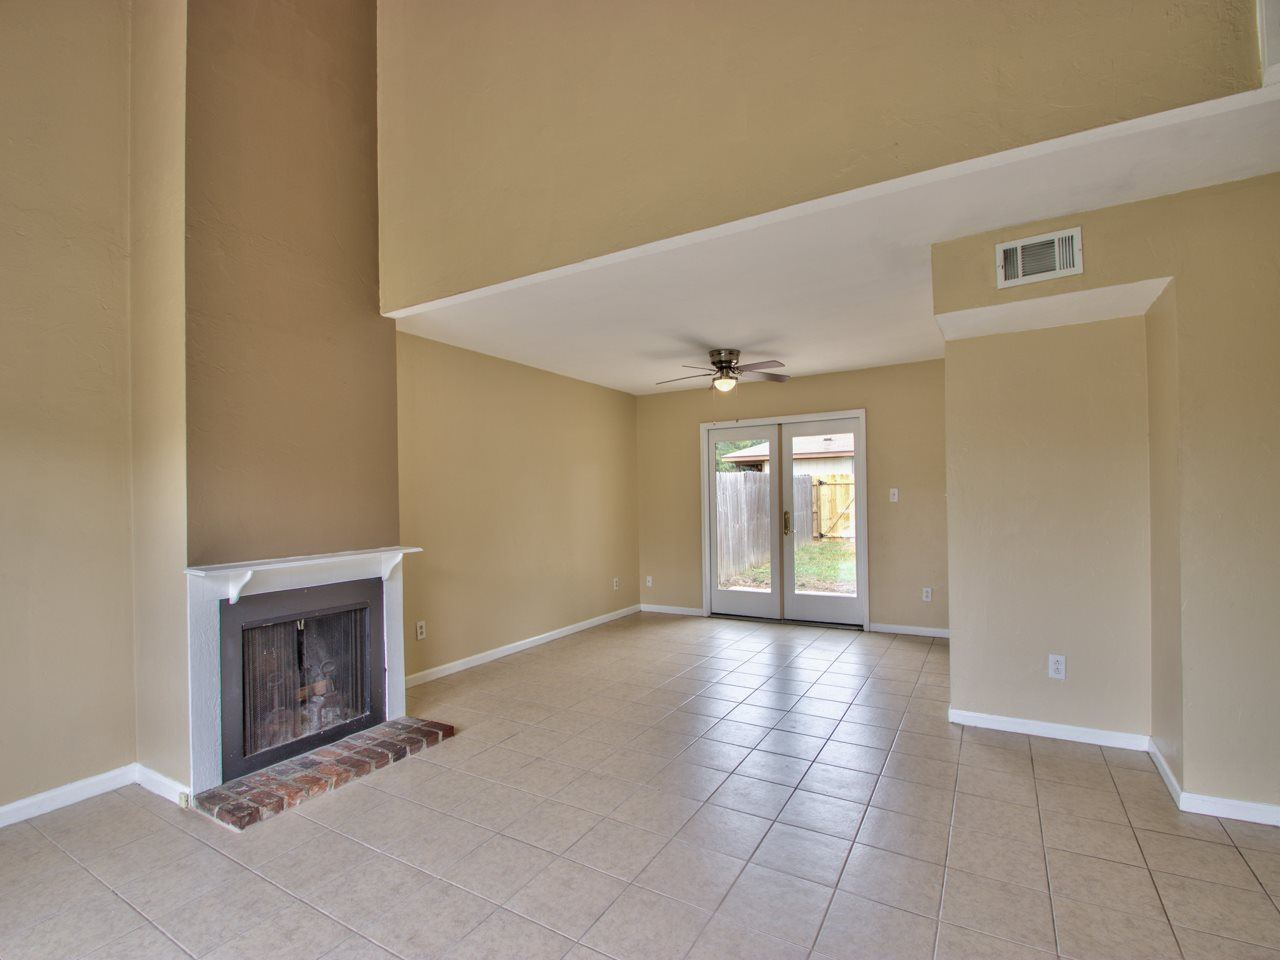 Photo of 2606 Clara Kee Boulevard, TALLAHASSEE, FL 32303 (MLS # 317216)